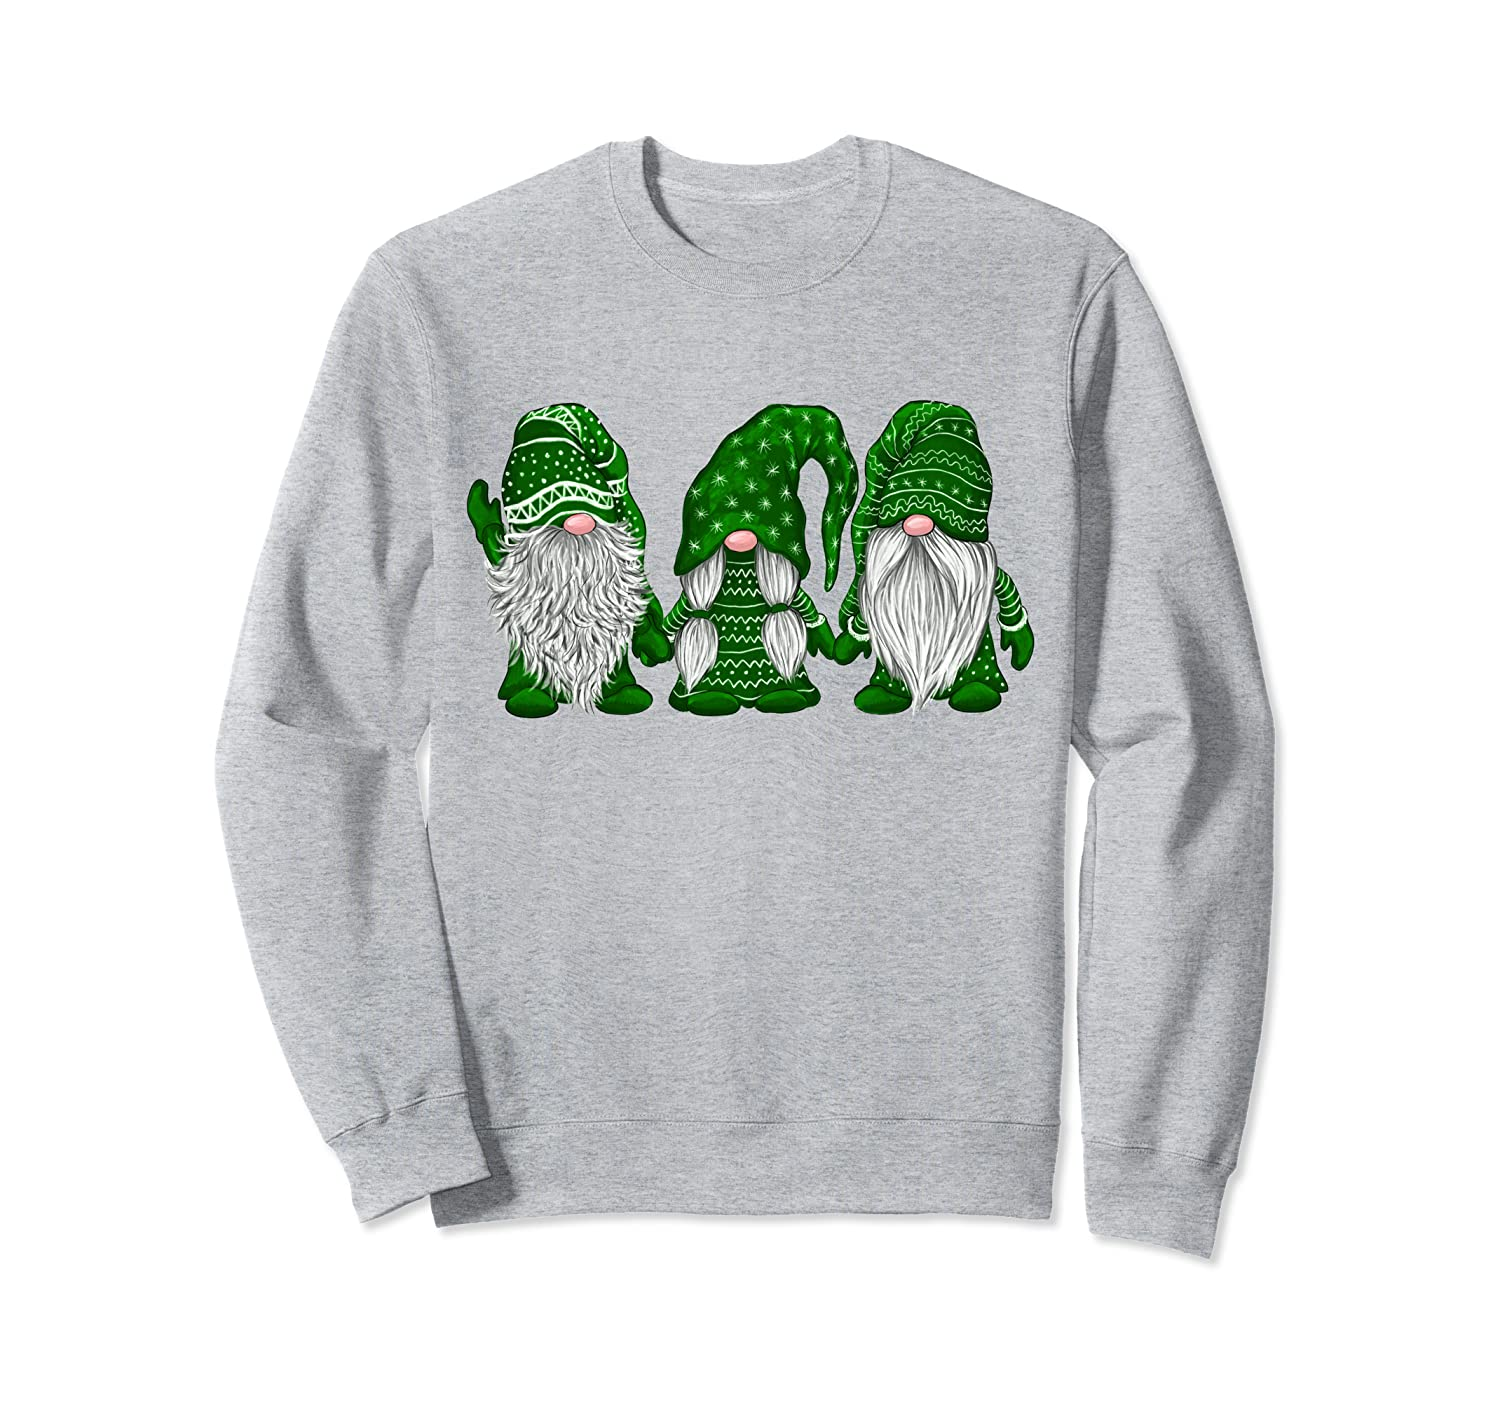 Hanging With Green Gnomies Santa Gnome Christmas Costume Sweatshirt-TH